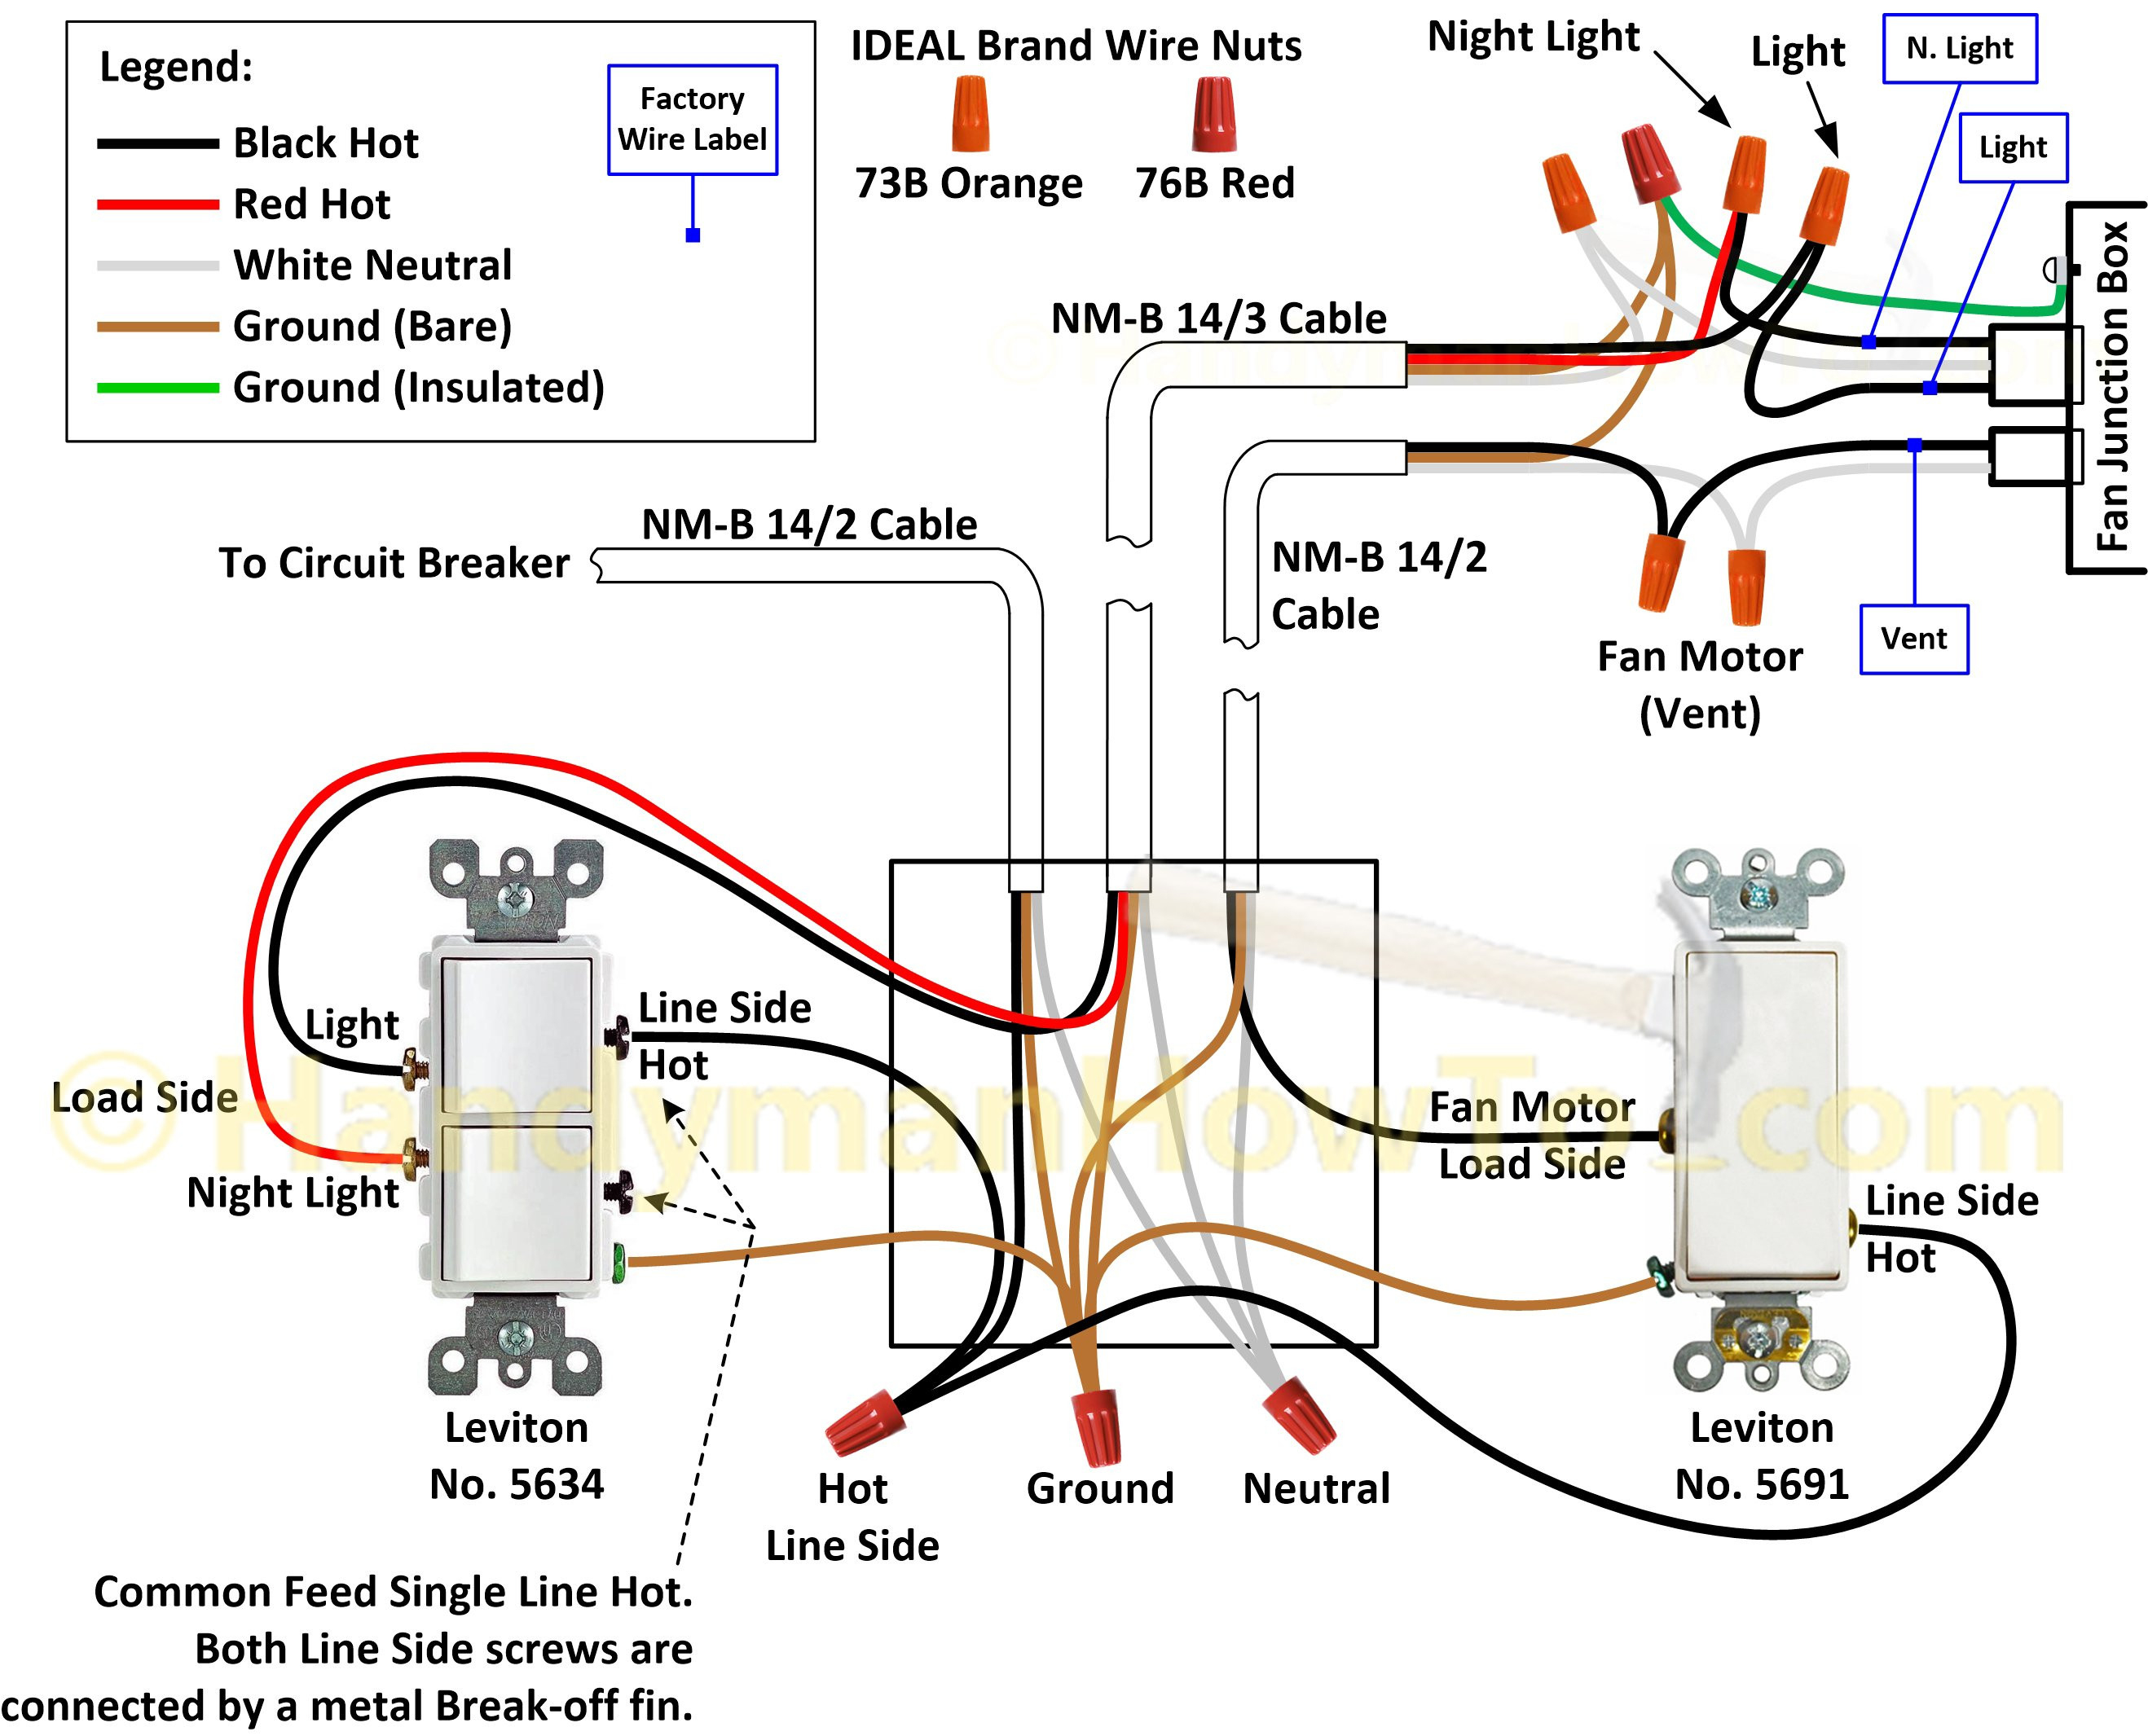 Kbic 120 Wiring Diagram Awesome Quantum Energy Generator User Manual - 277 Volt Wiring Diagram